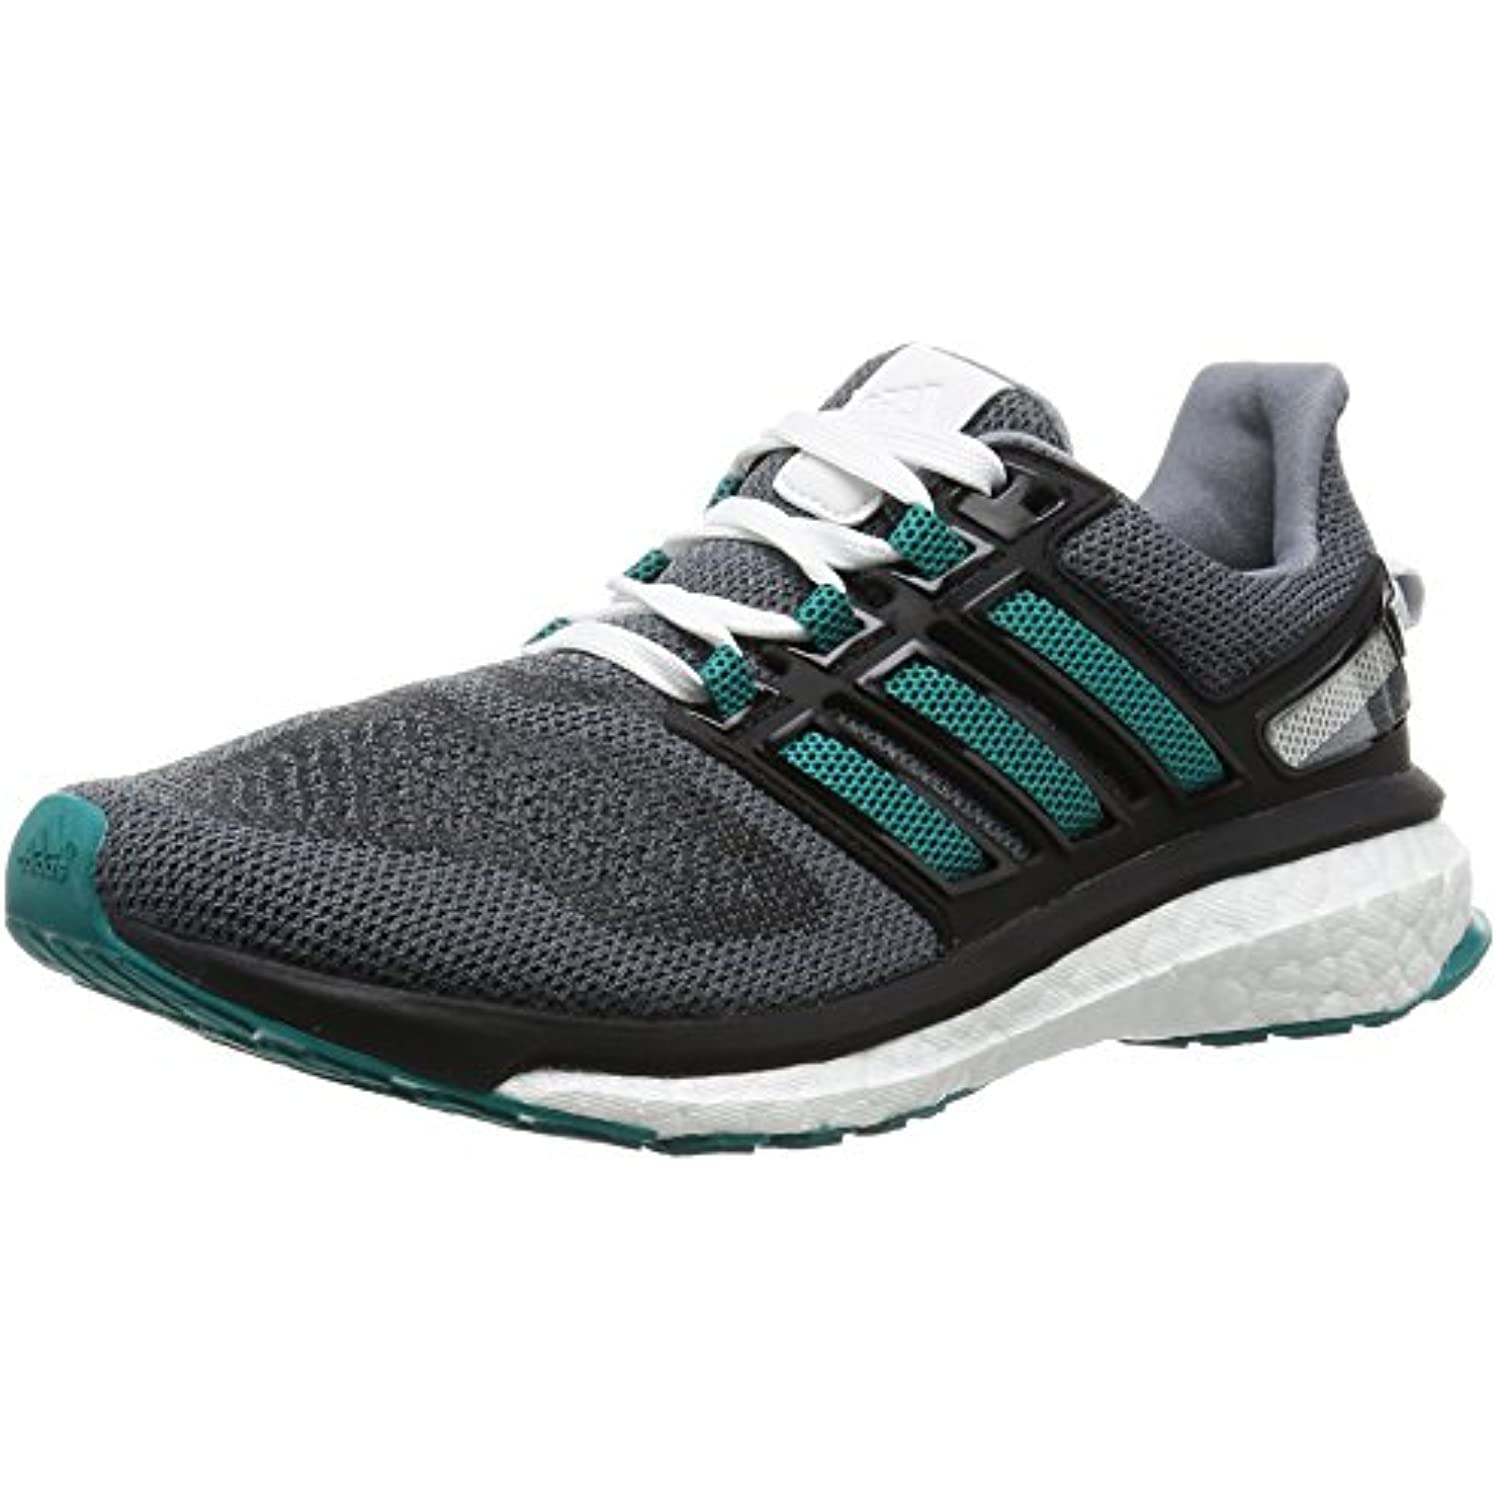 Chaussures Femme Adidas 3 Boost Energy De Course 6xwqfY